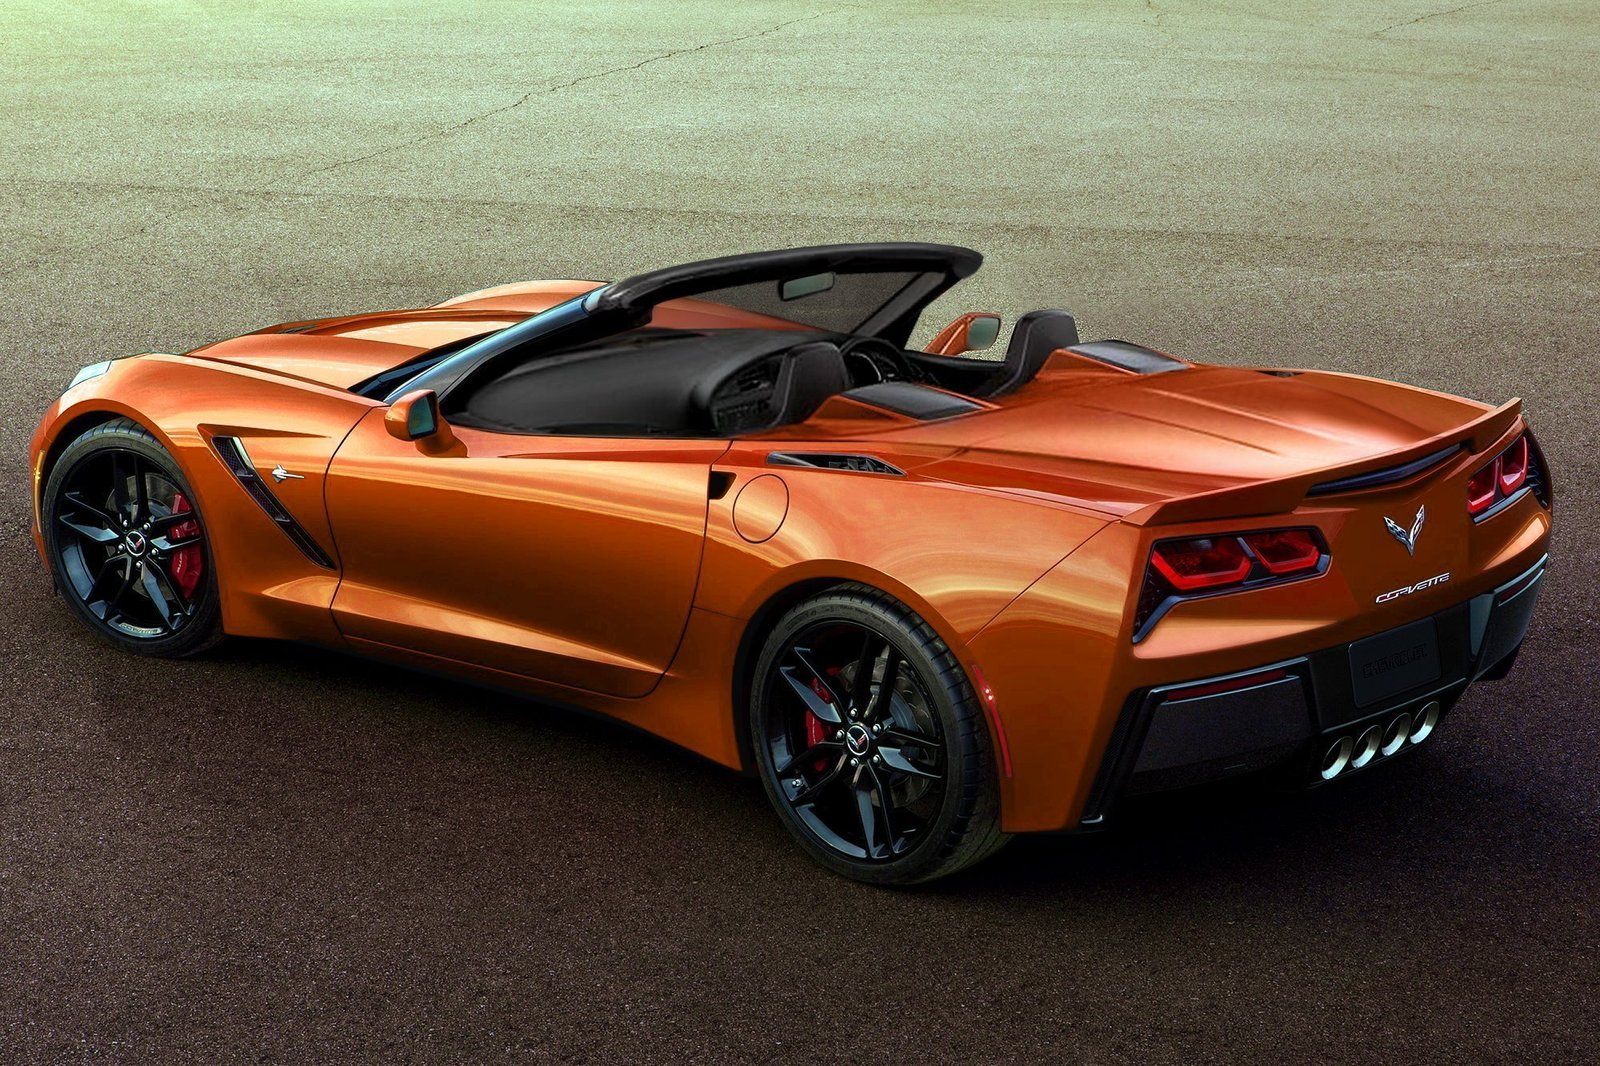 2014 Corvette Stingray convertibleCorvette Stingray 2014 Orange